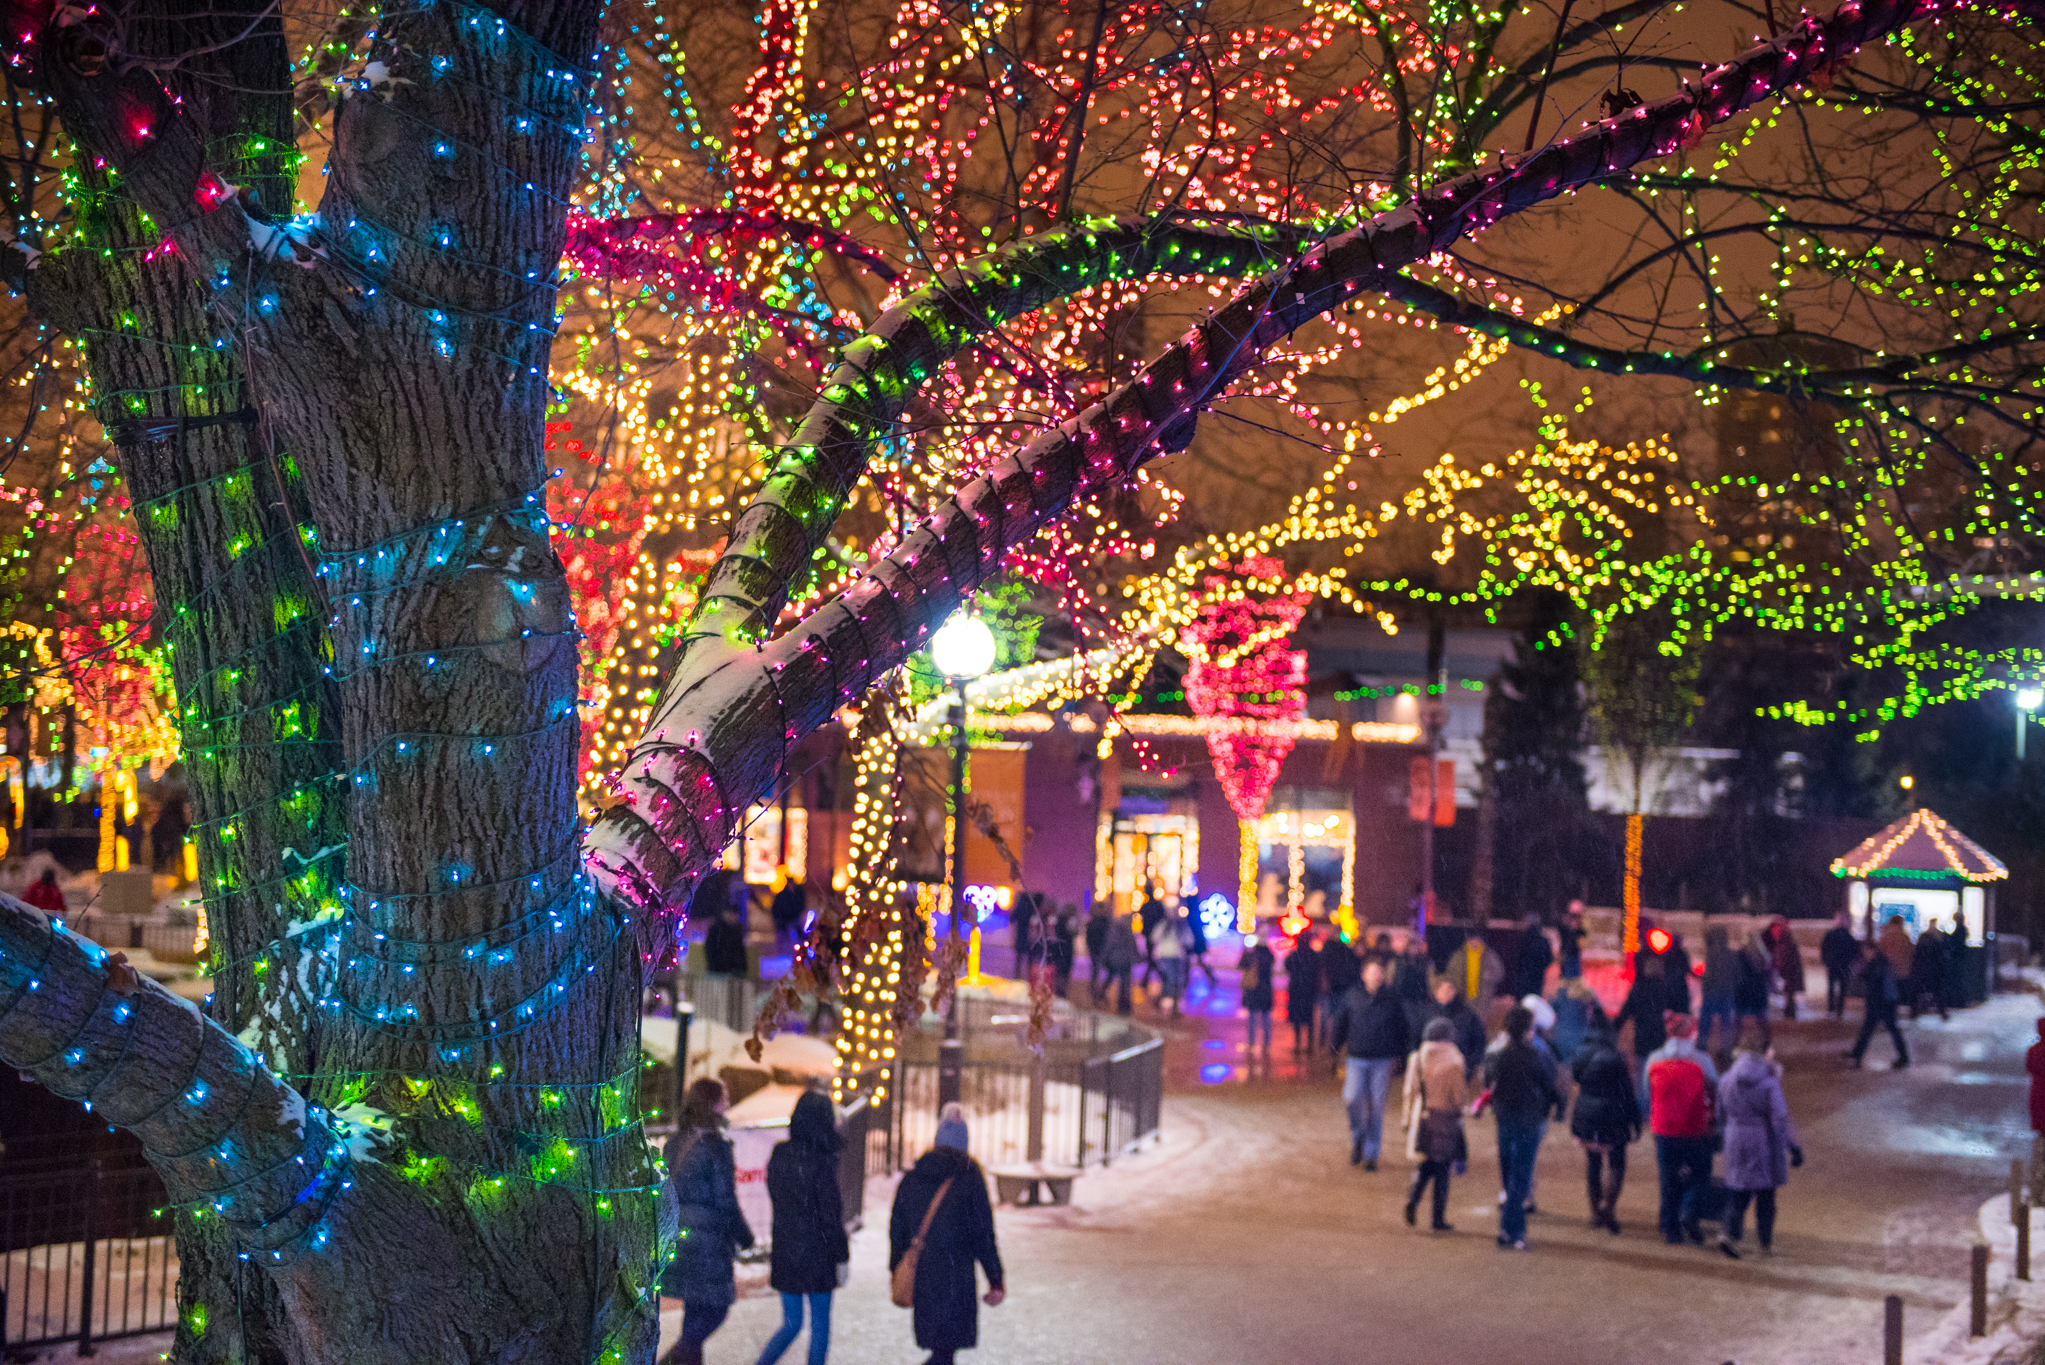 Where to see spectacular Christmas lights in Chicago